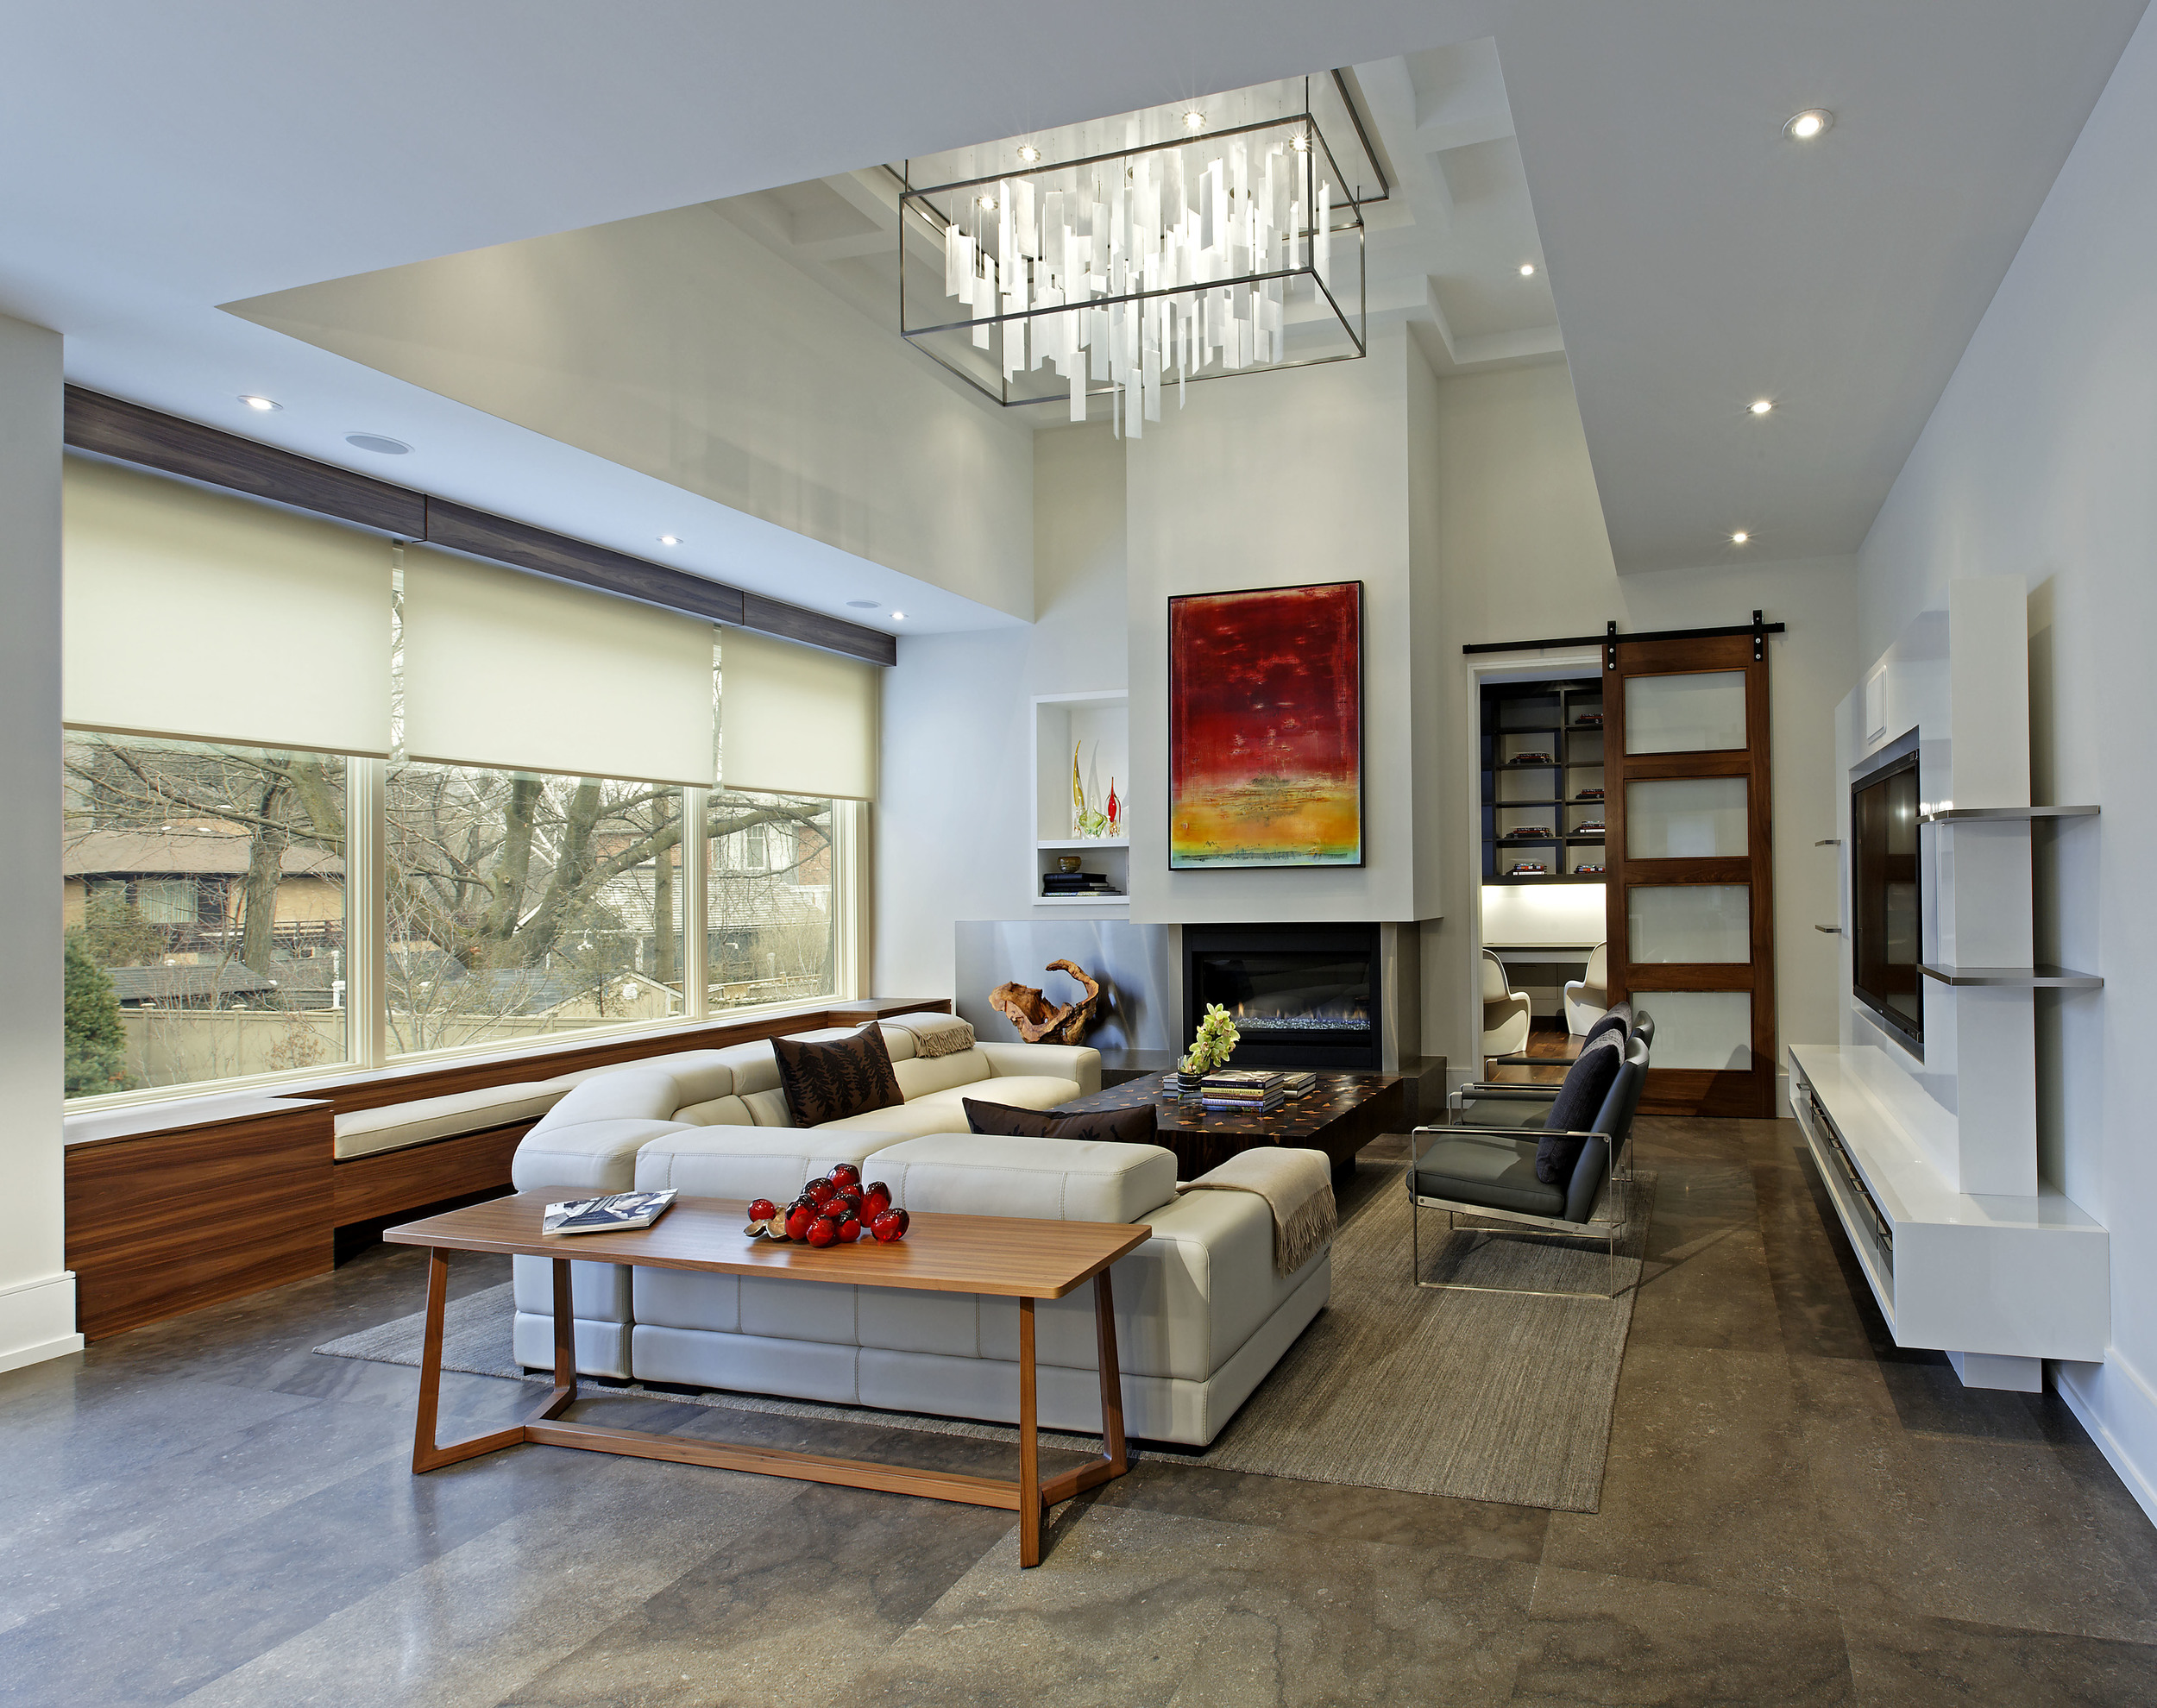 This room epitomizes the inviting, cozy, family-oriented environment created within a pared down, modern context. Its layering and sculpting includes seating and storage units tucked under the windows, below carefully planned bulkheads and a coffered ceiling and custom light fixture.